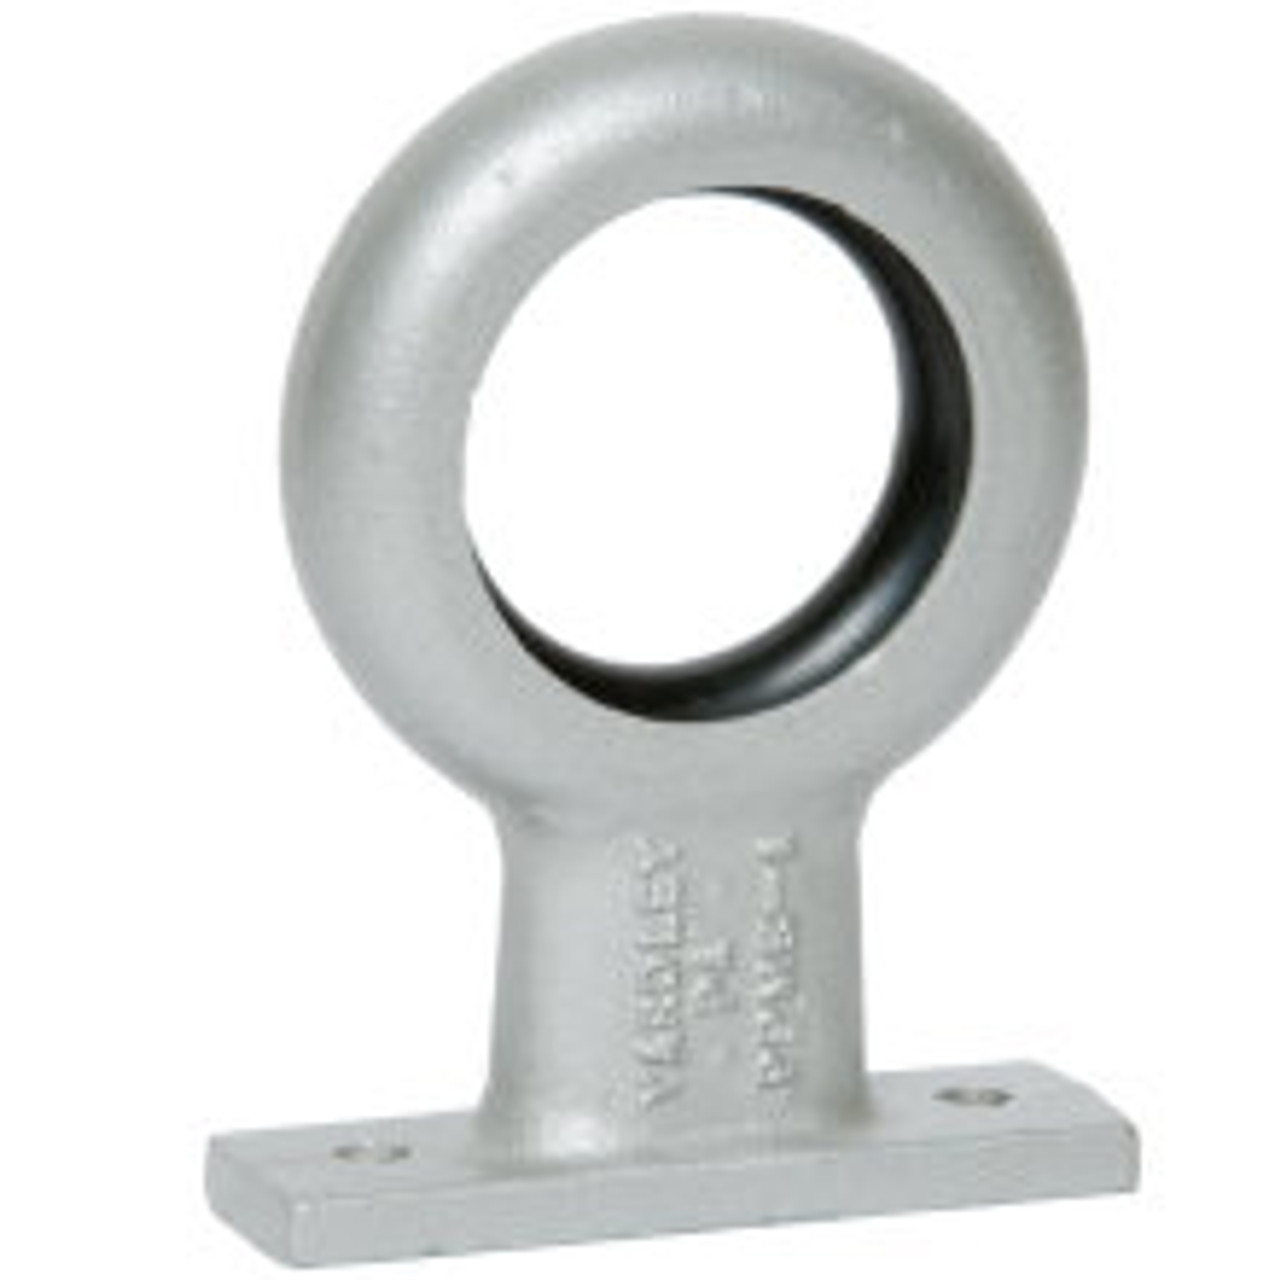 Ziamatic Ring Bracket-Painted PPBM-A